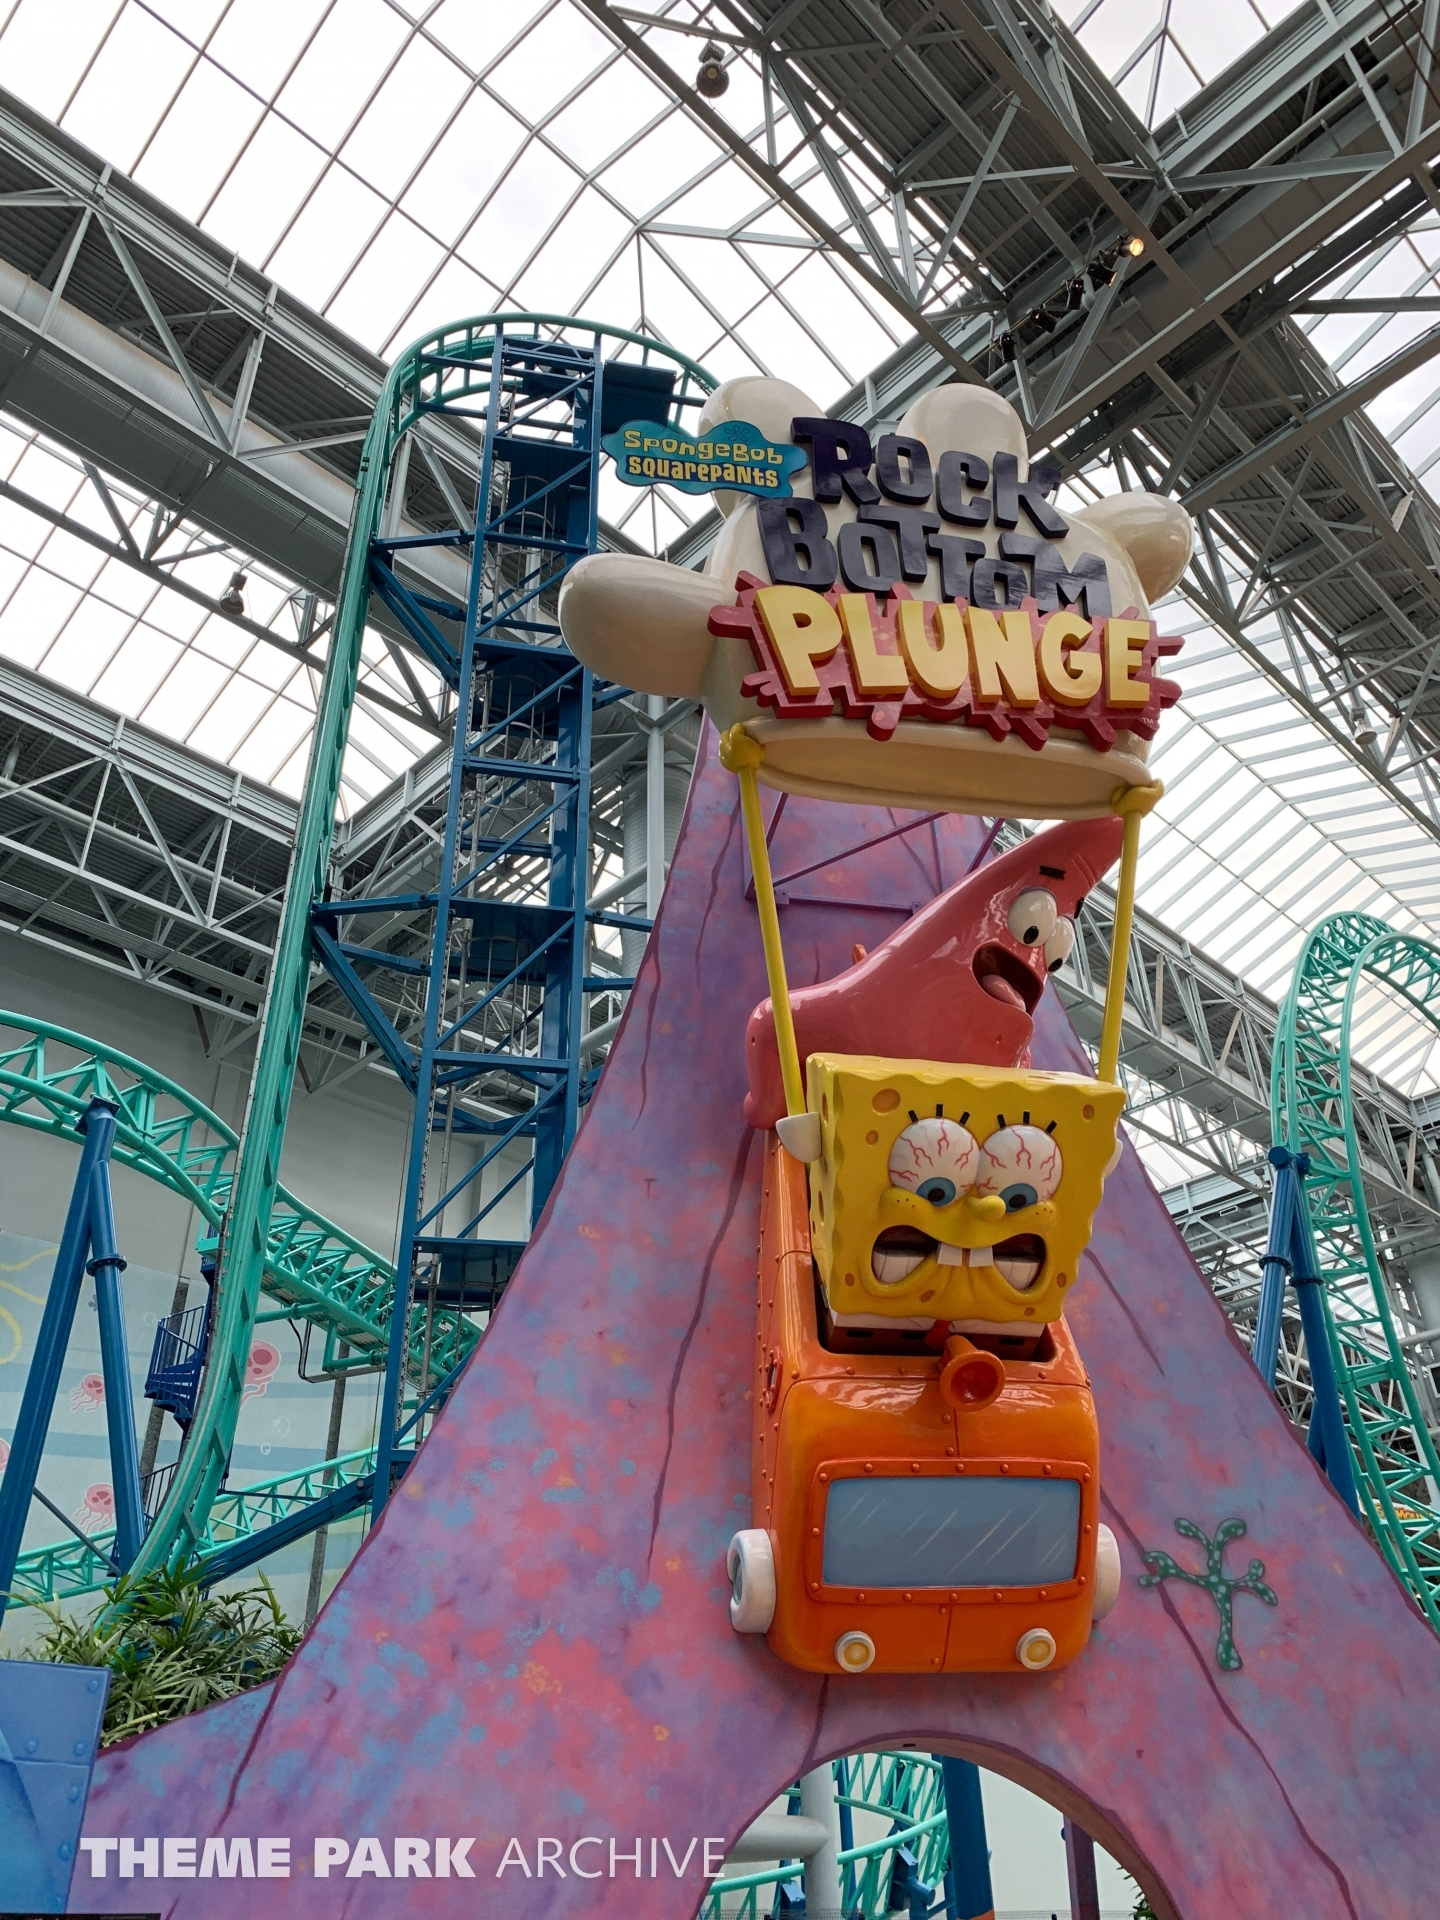 SpongeBob SquarePants Rock Bottom Plunge at Nickelodeon Universe at Mall of America